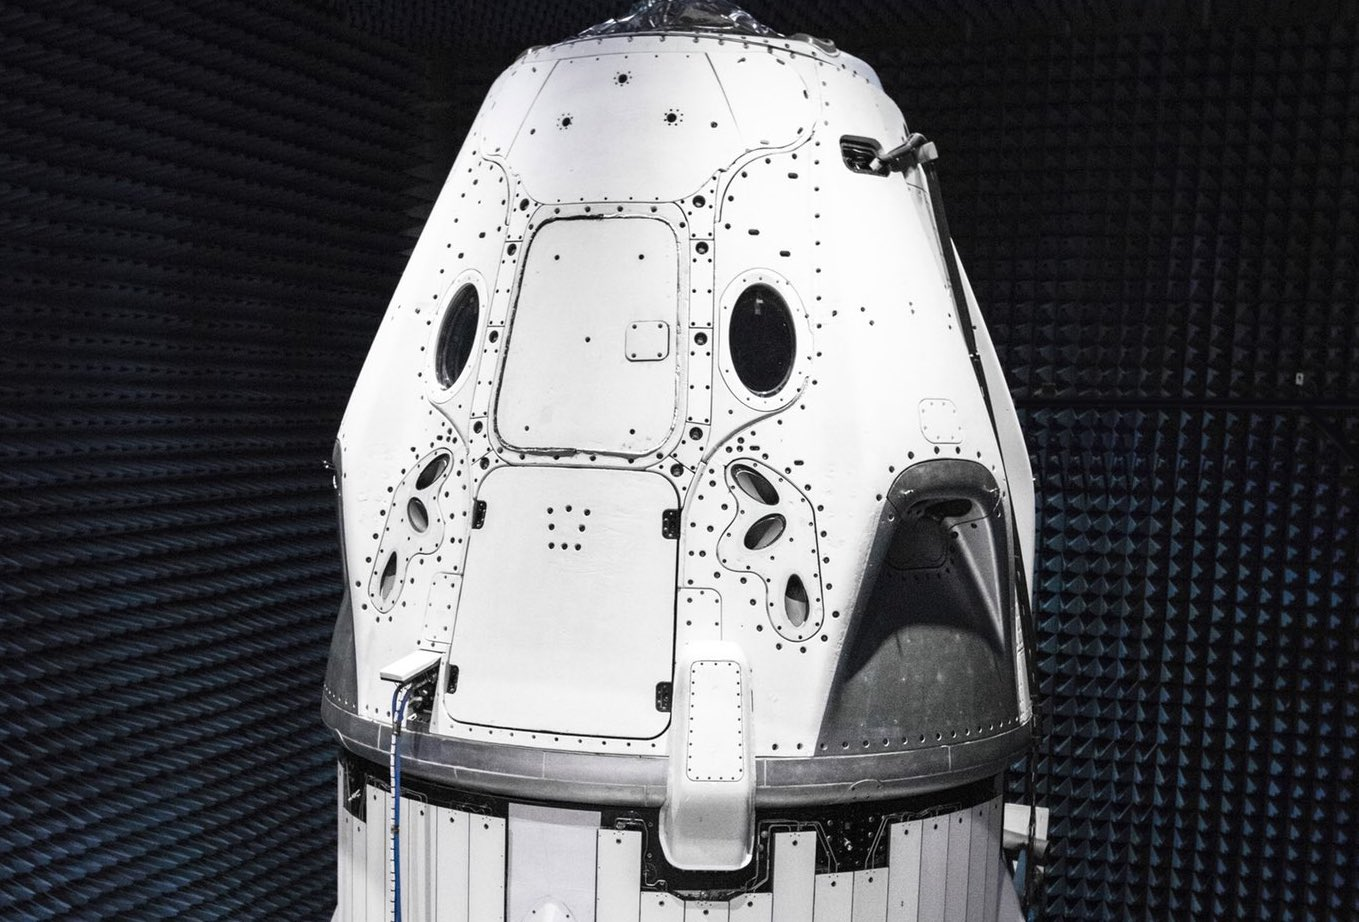 SpaceX's Crew Dragon spaceship nears first orbital launch test